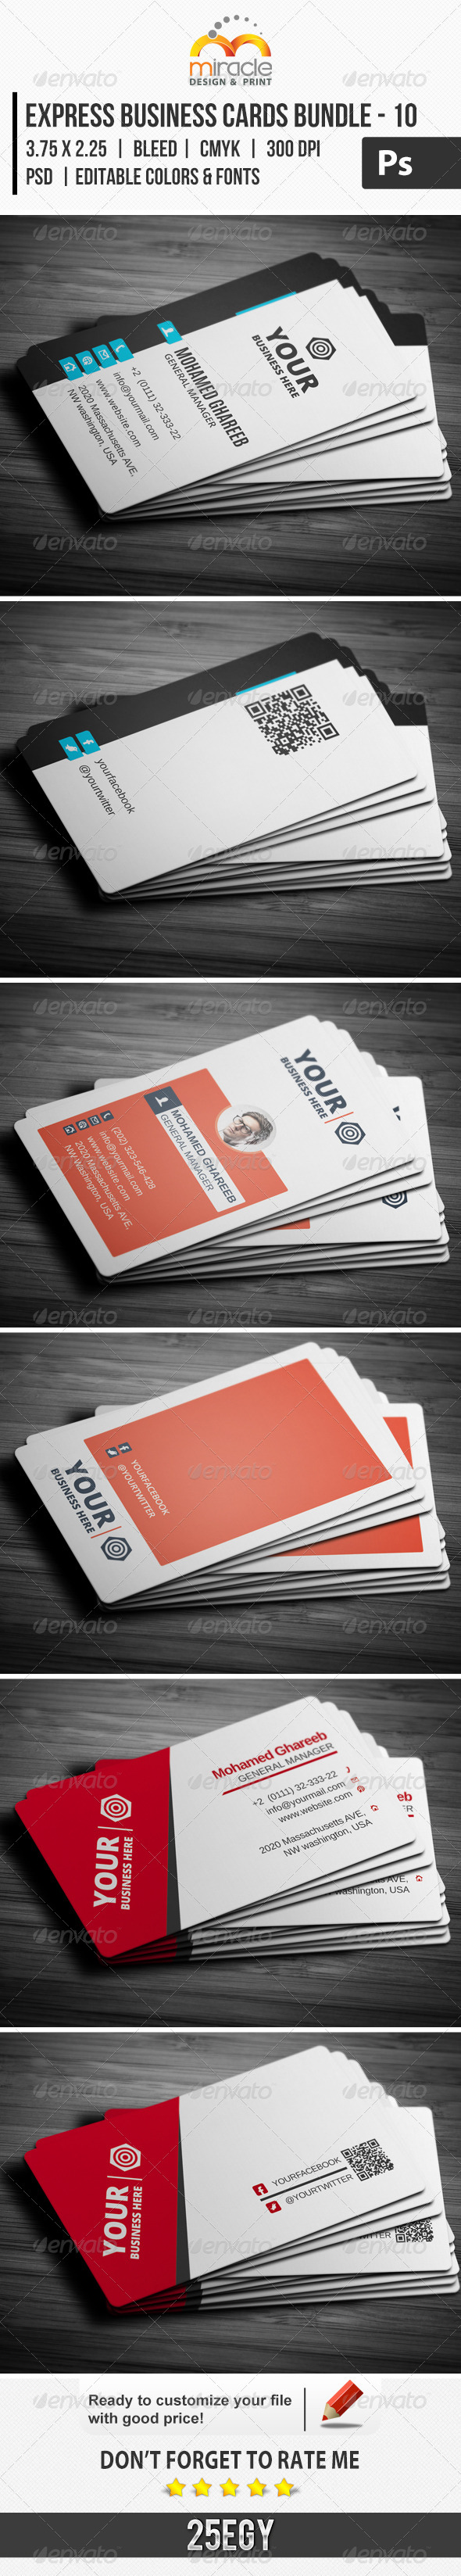 Express Business Cards Bundle - 10 - Corporate Business Cards